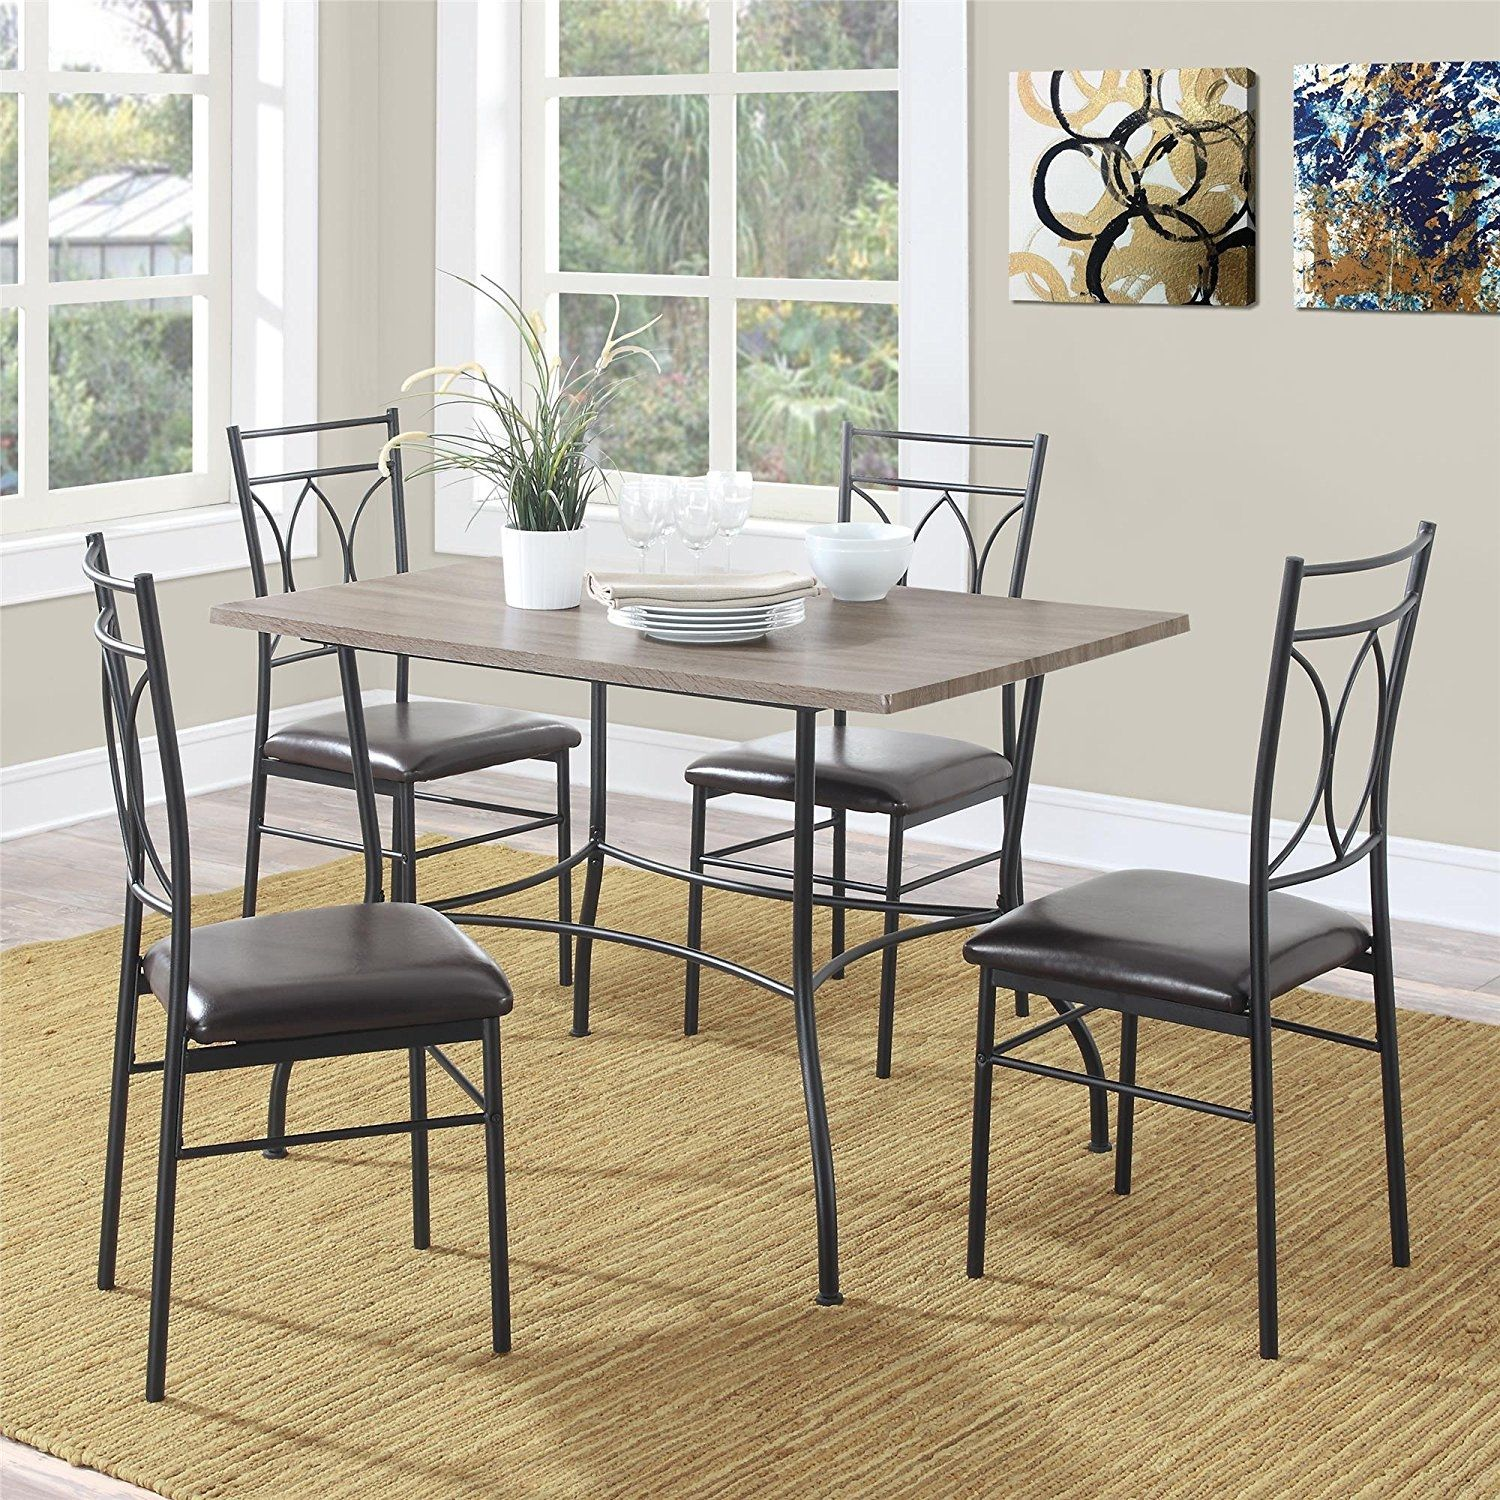 5 Piece Dining Table Set Under 200